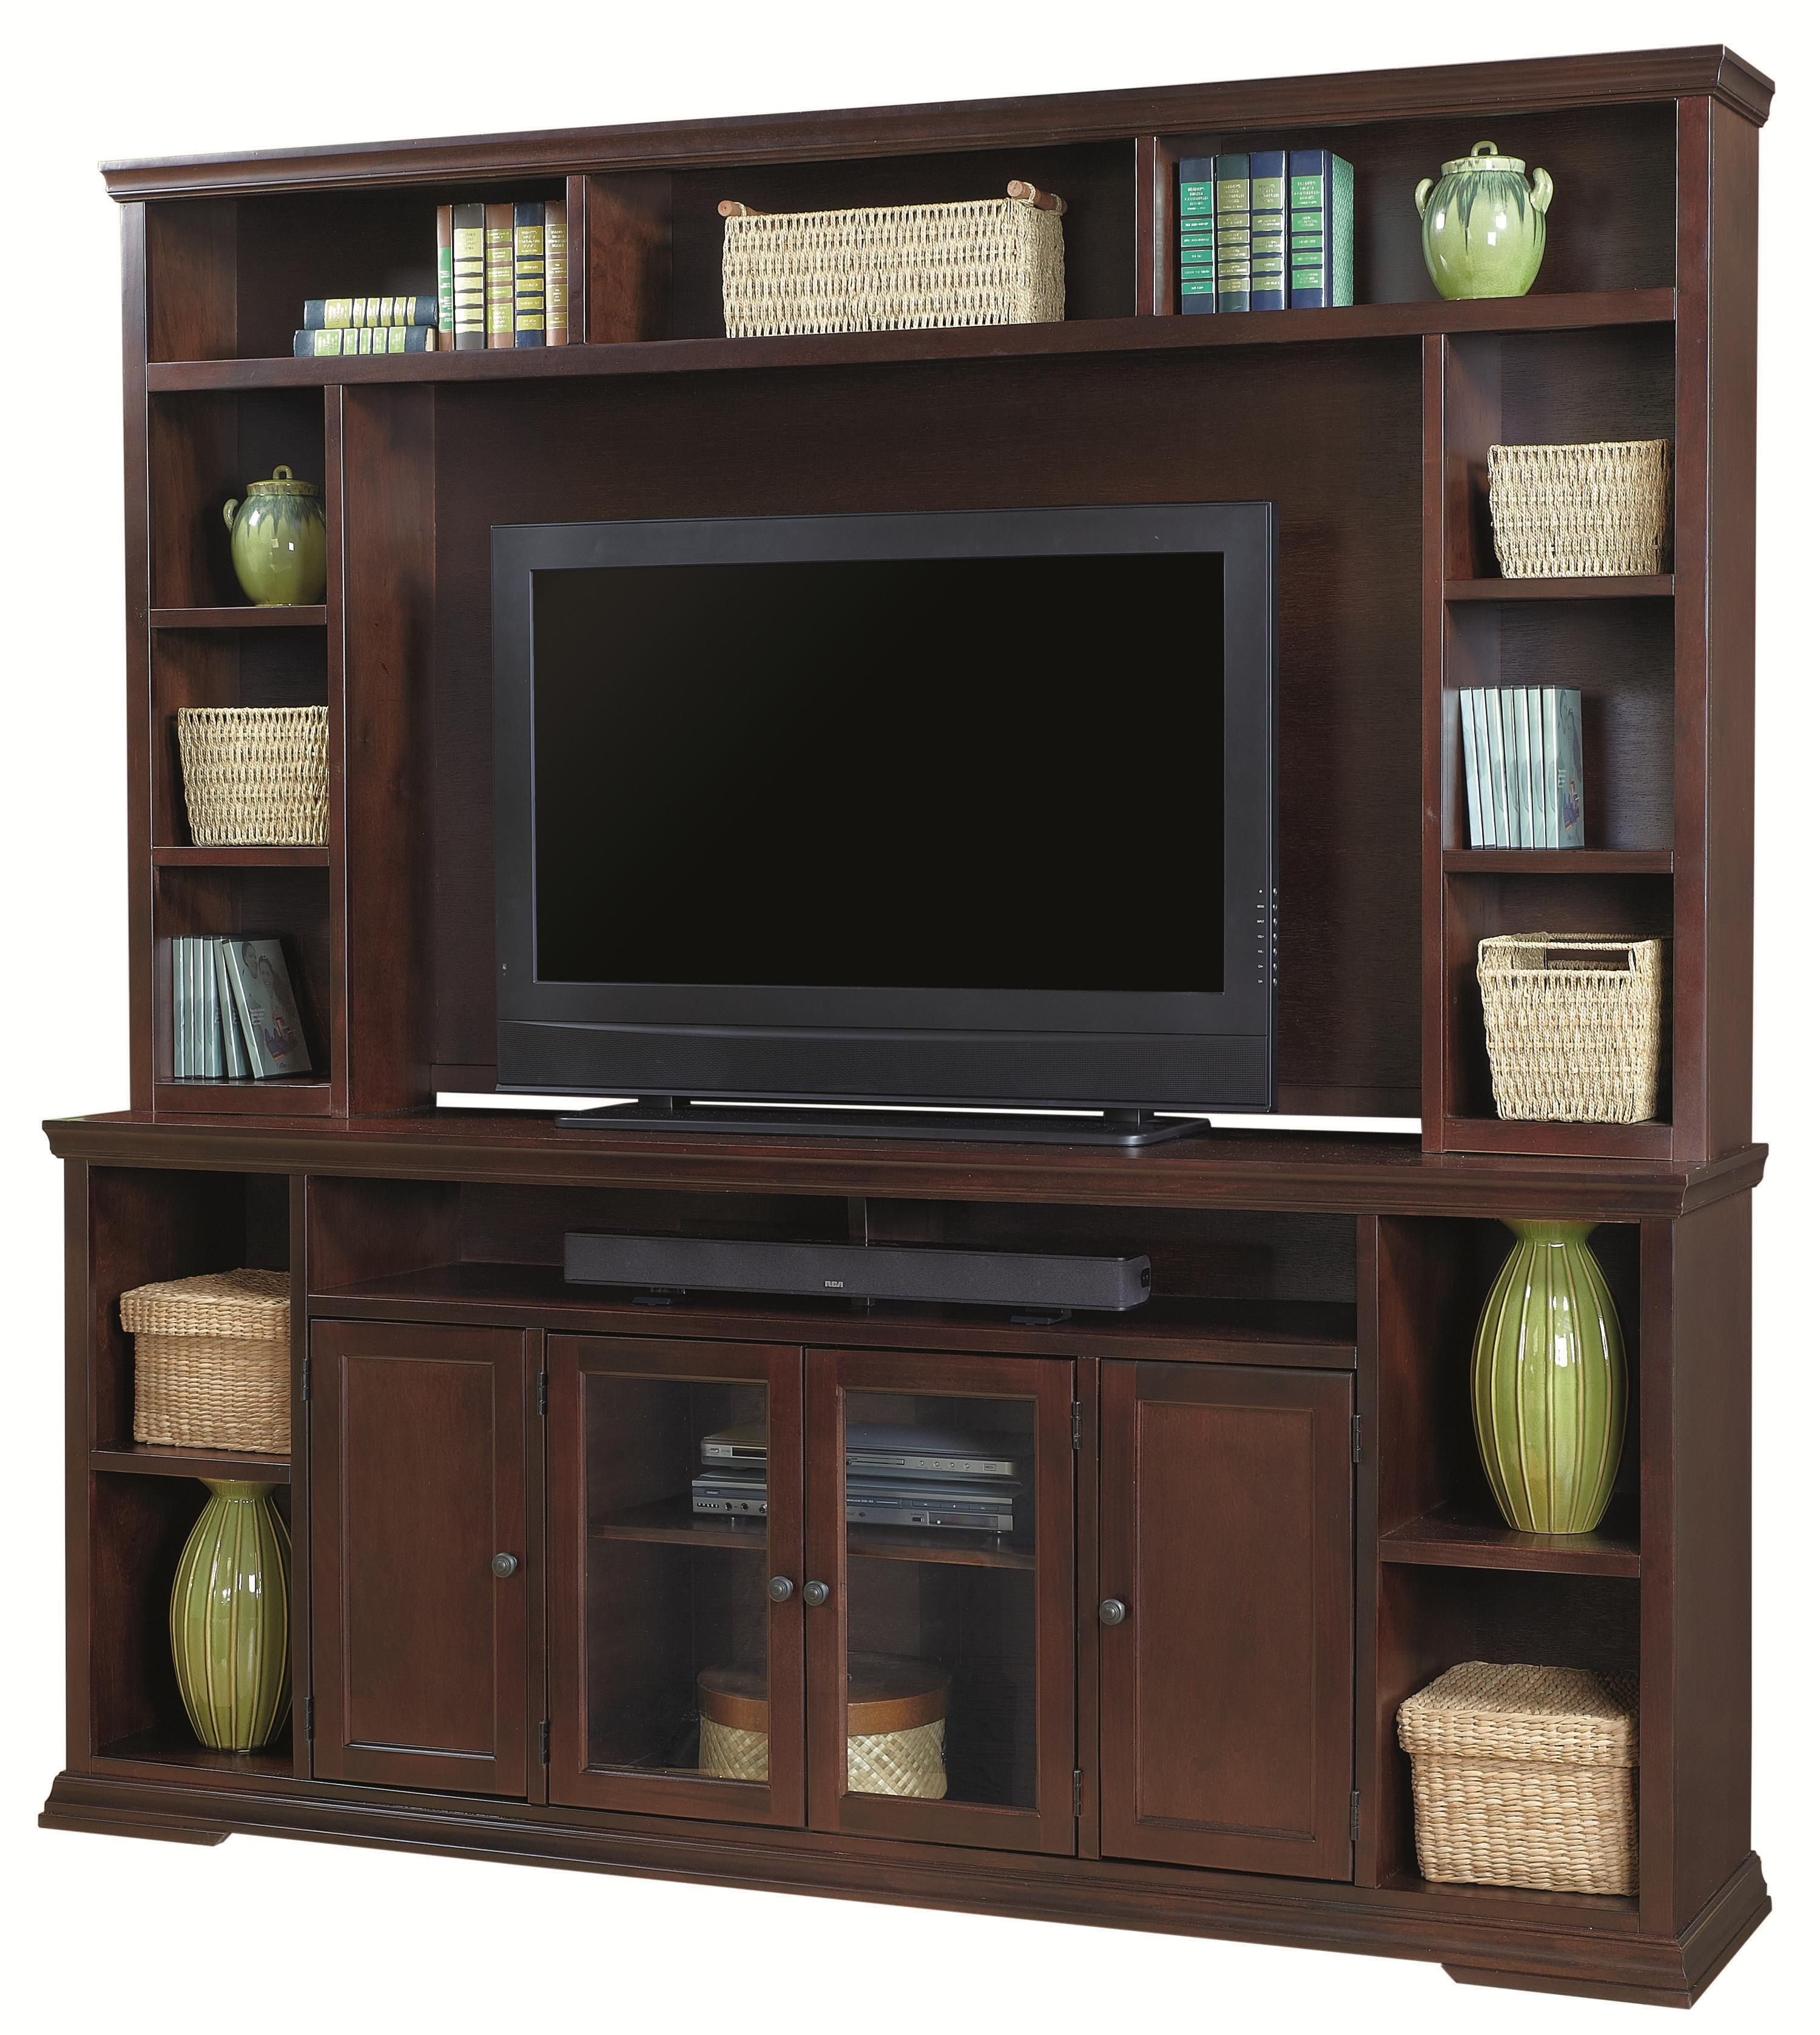 Gentil Shop For Aspenhome Console, And Other Home Entertainment Entertainment  Centers At Bronsteinu0027s Fine Furniture In Mobile, AL.